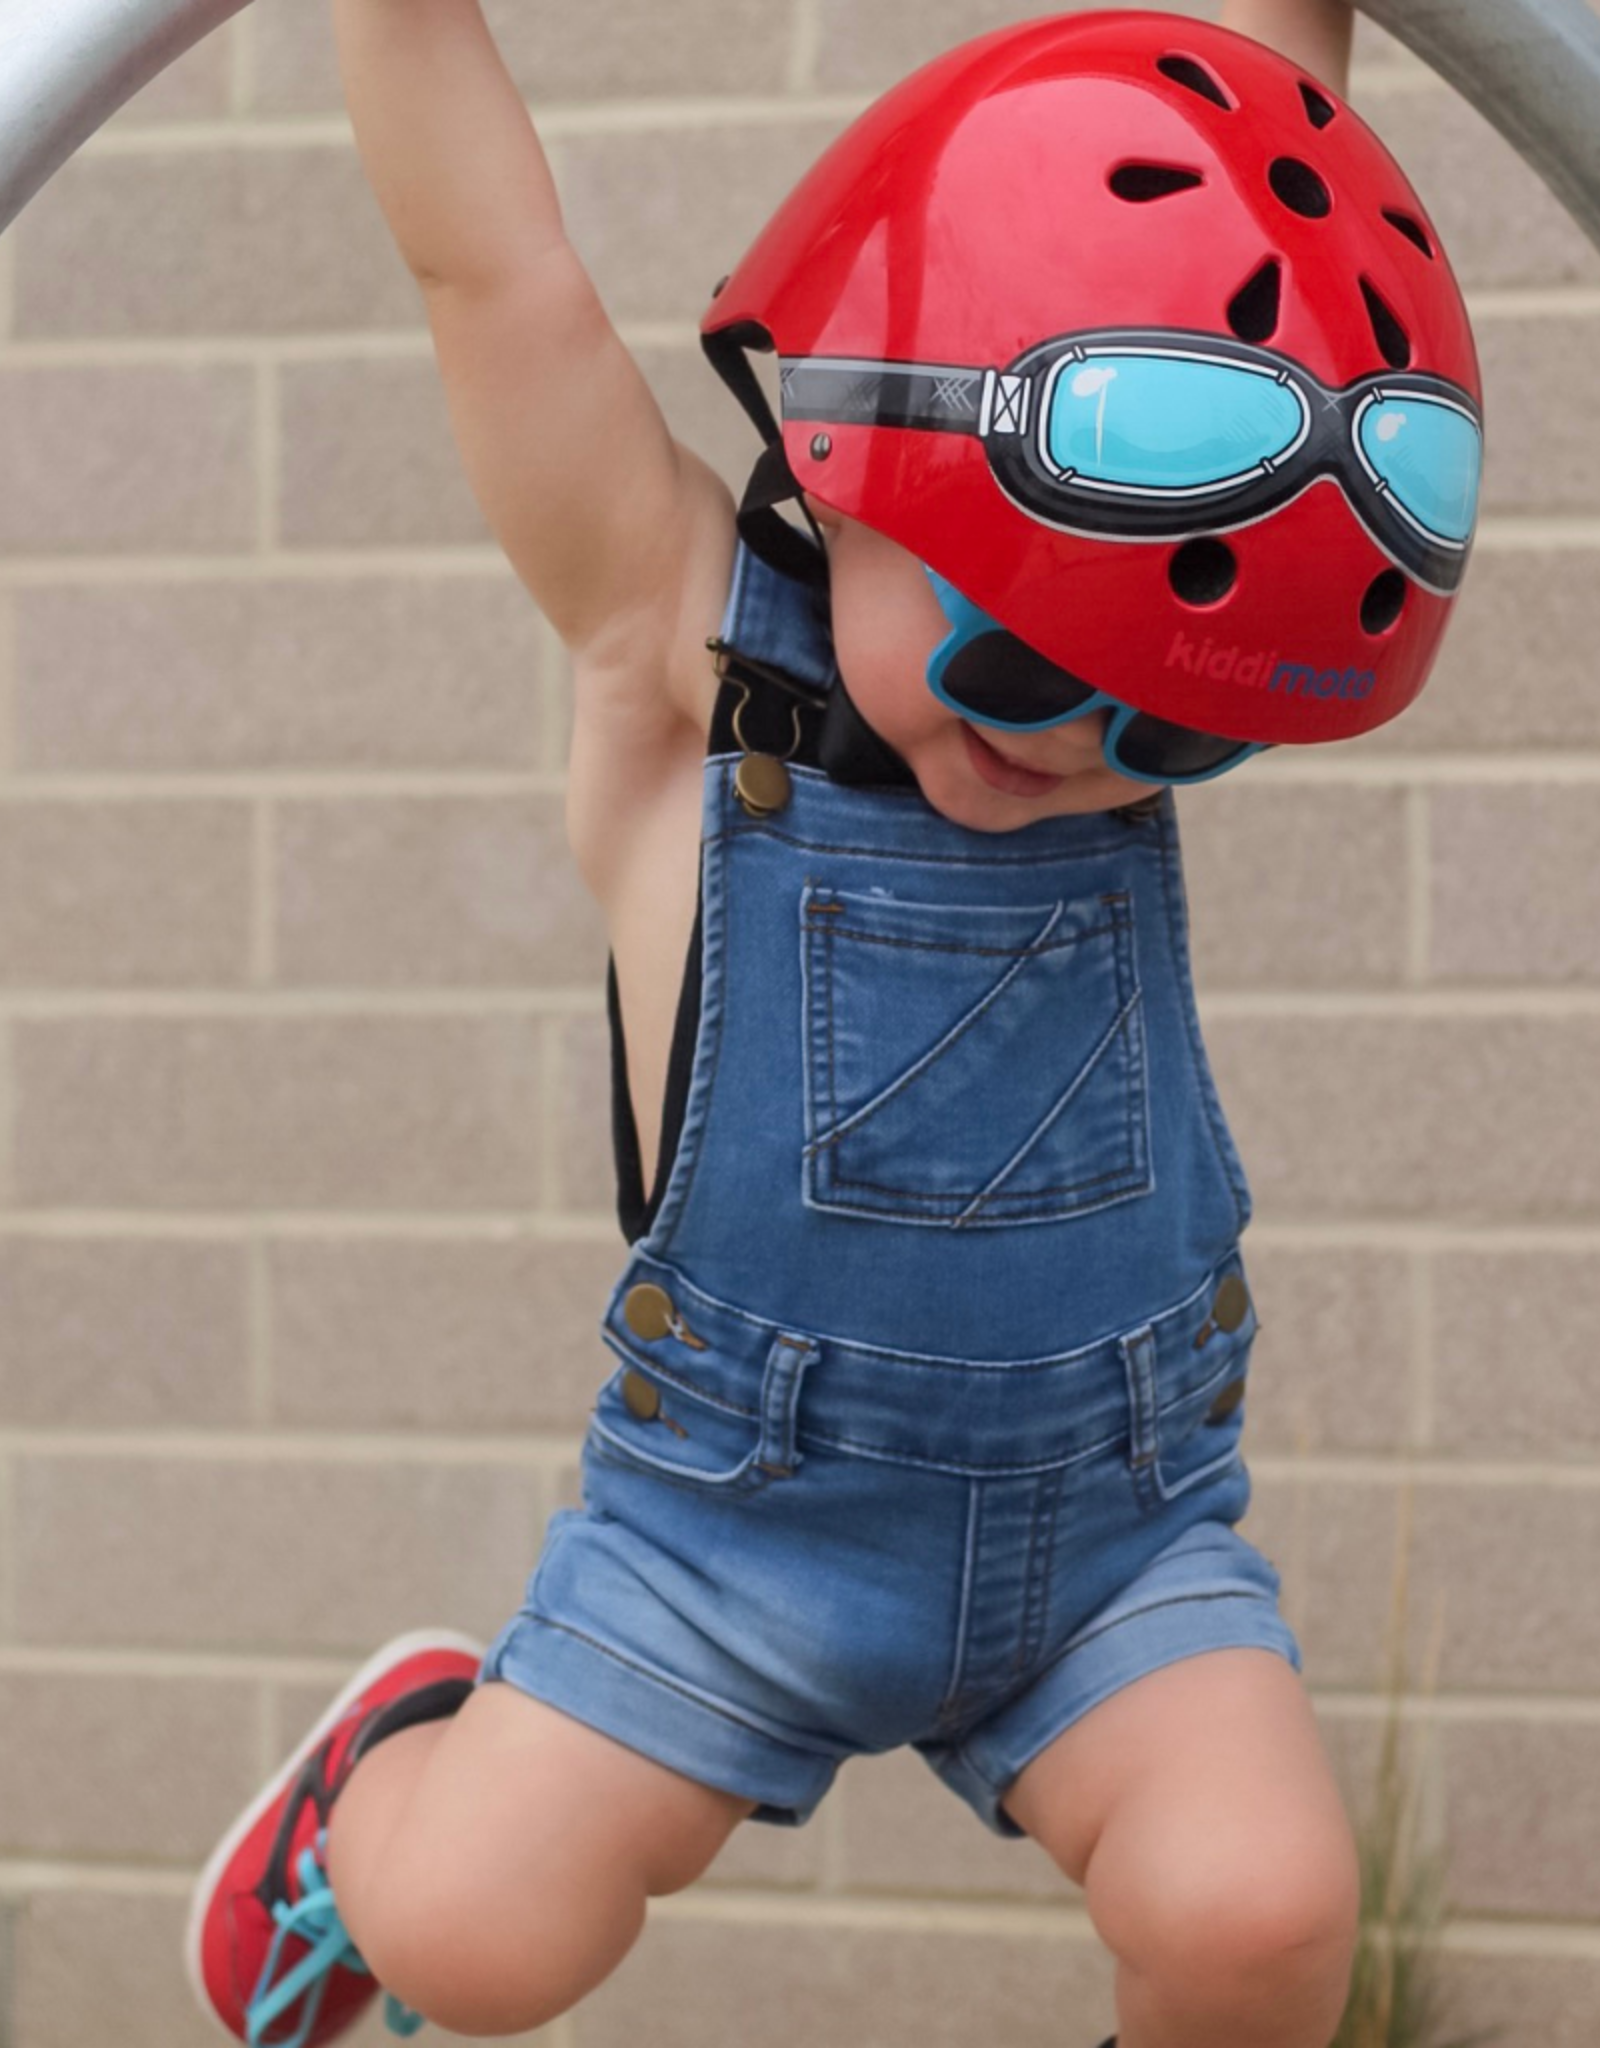 Kiddimoto Helmet Kiddimoto Helmet Red Goggles - Small